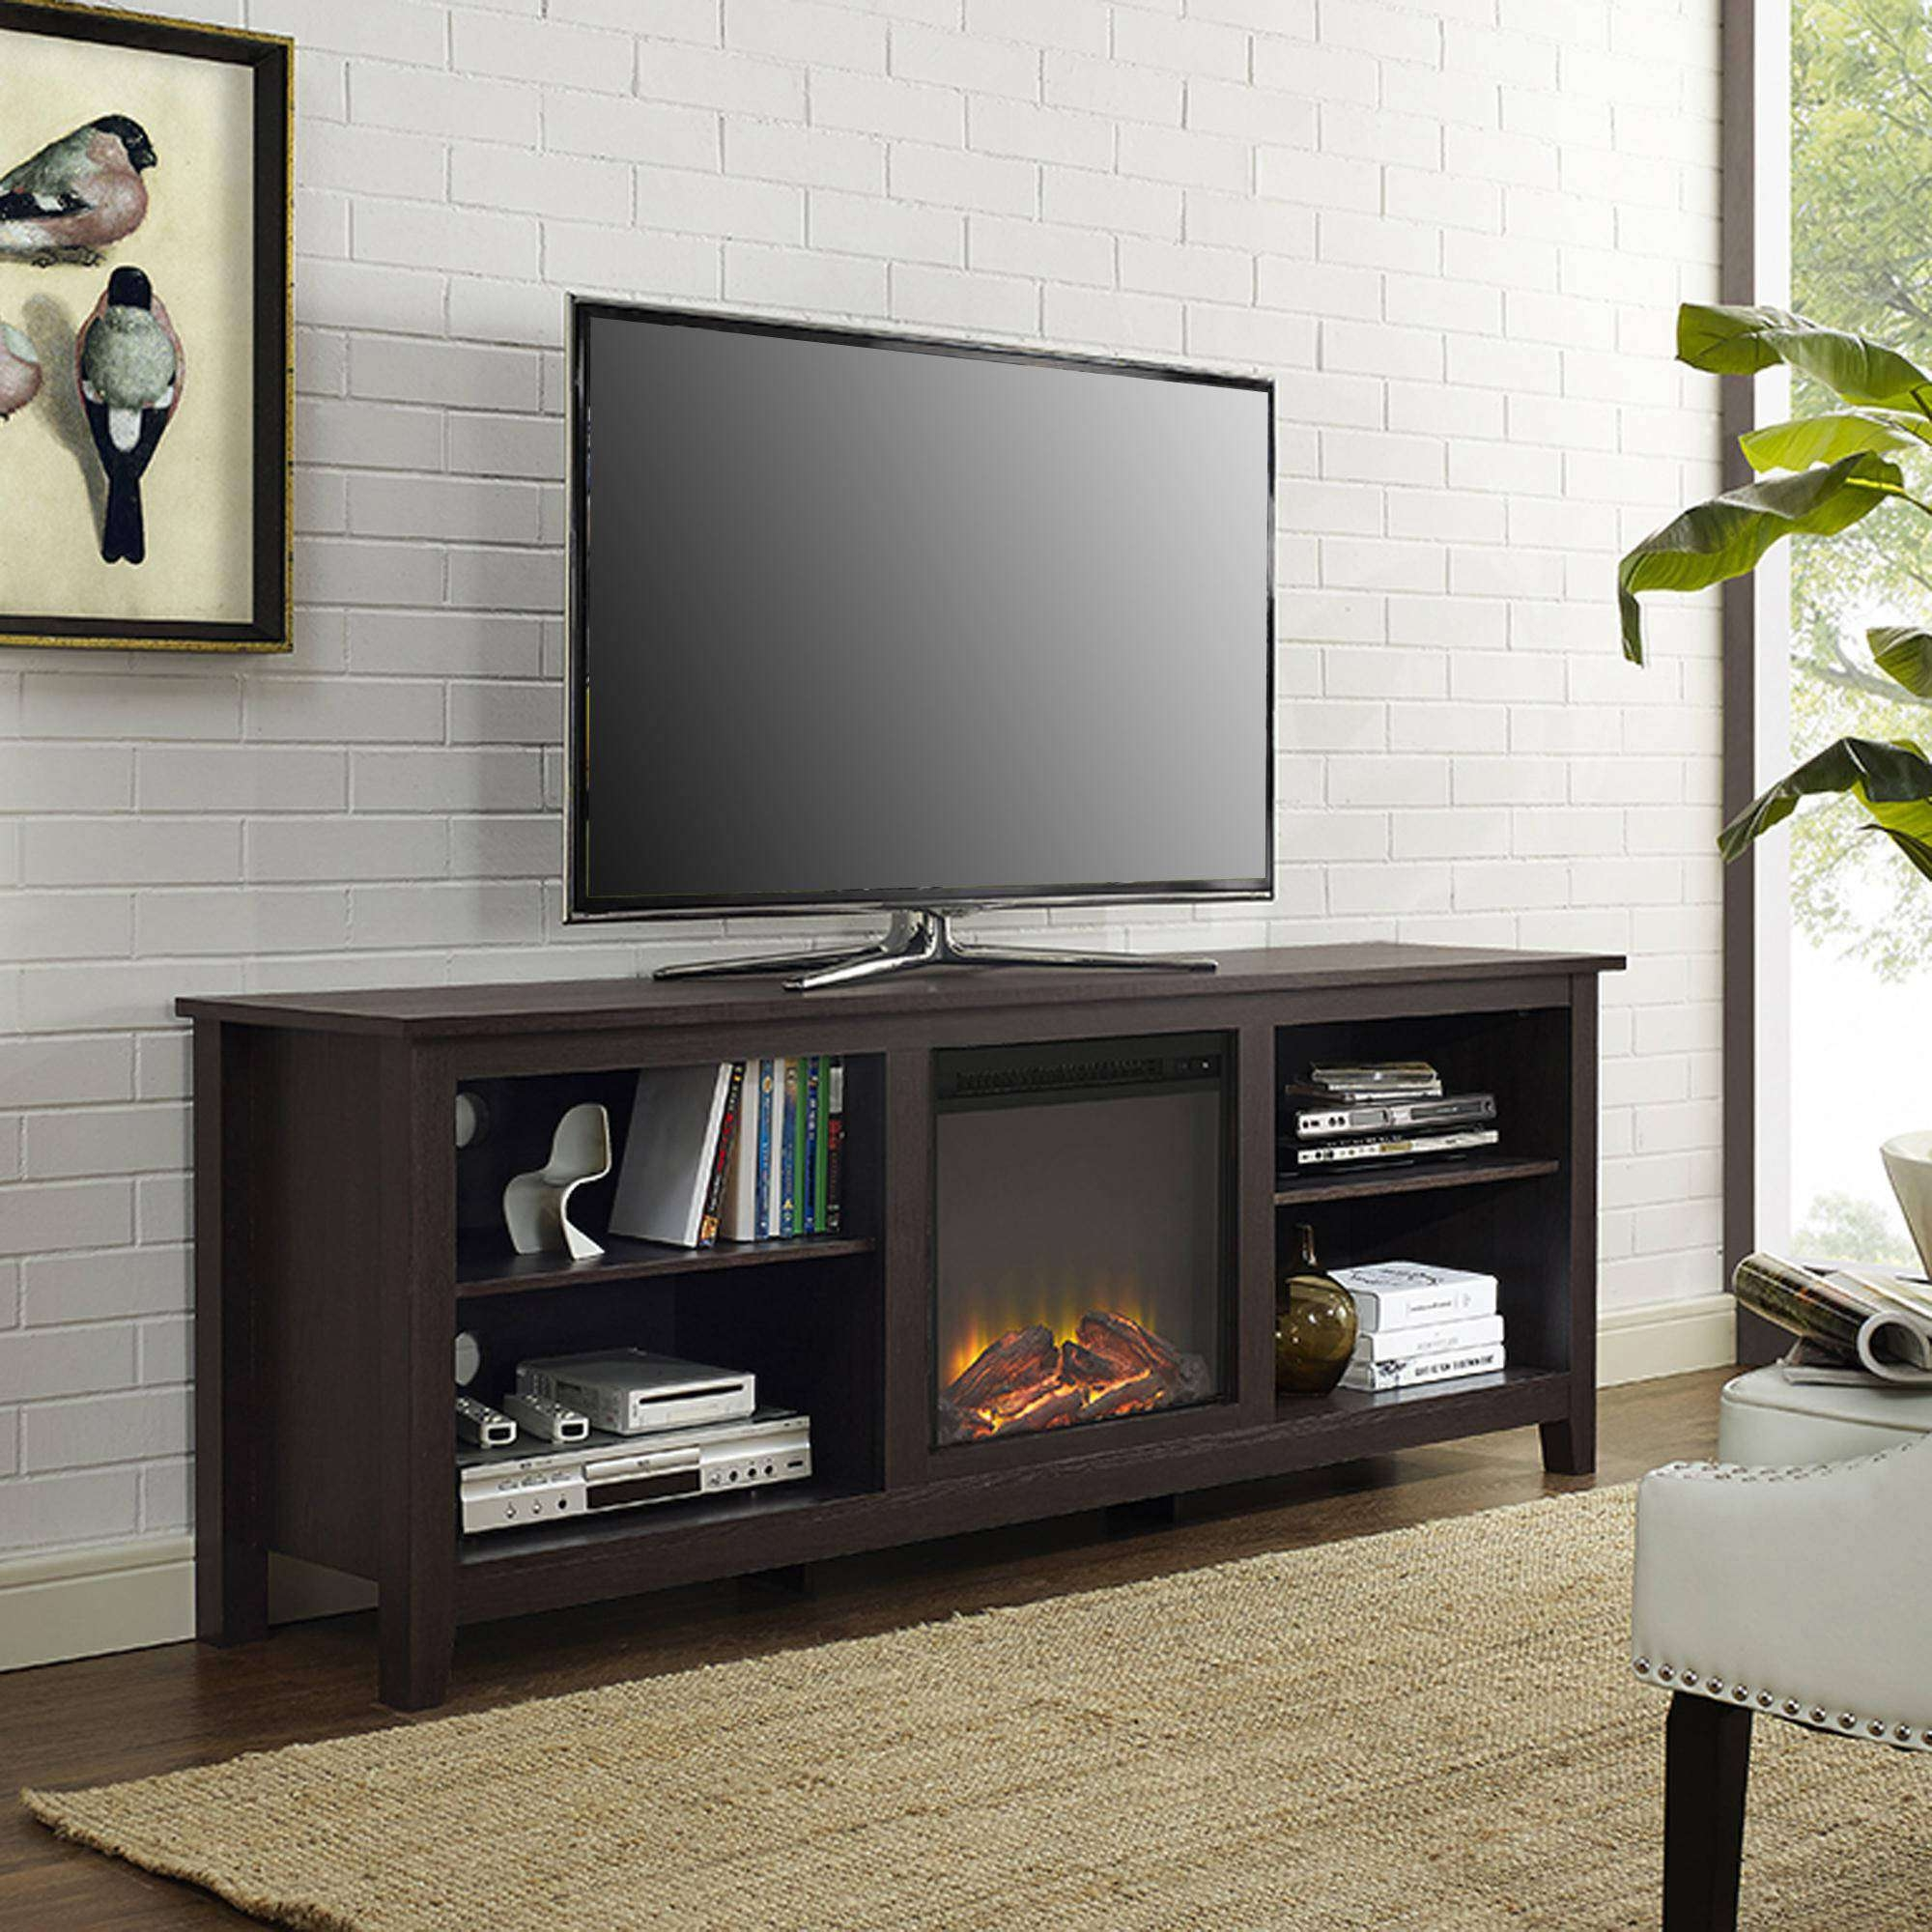 Walker Edison Wood Tv Stand With Fireplace, For Tvs Up To 70 In Tv Stands For 70 Inch Tvs (View 3 of 15)